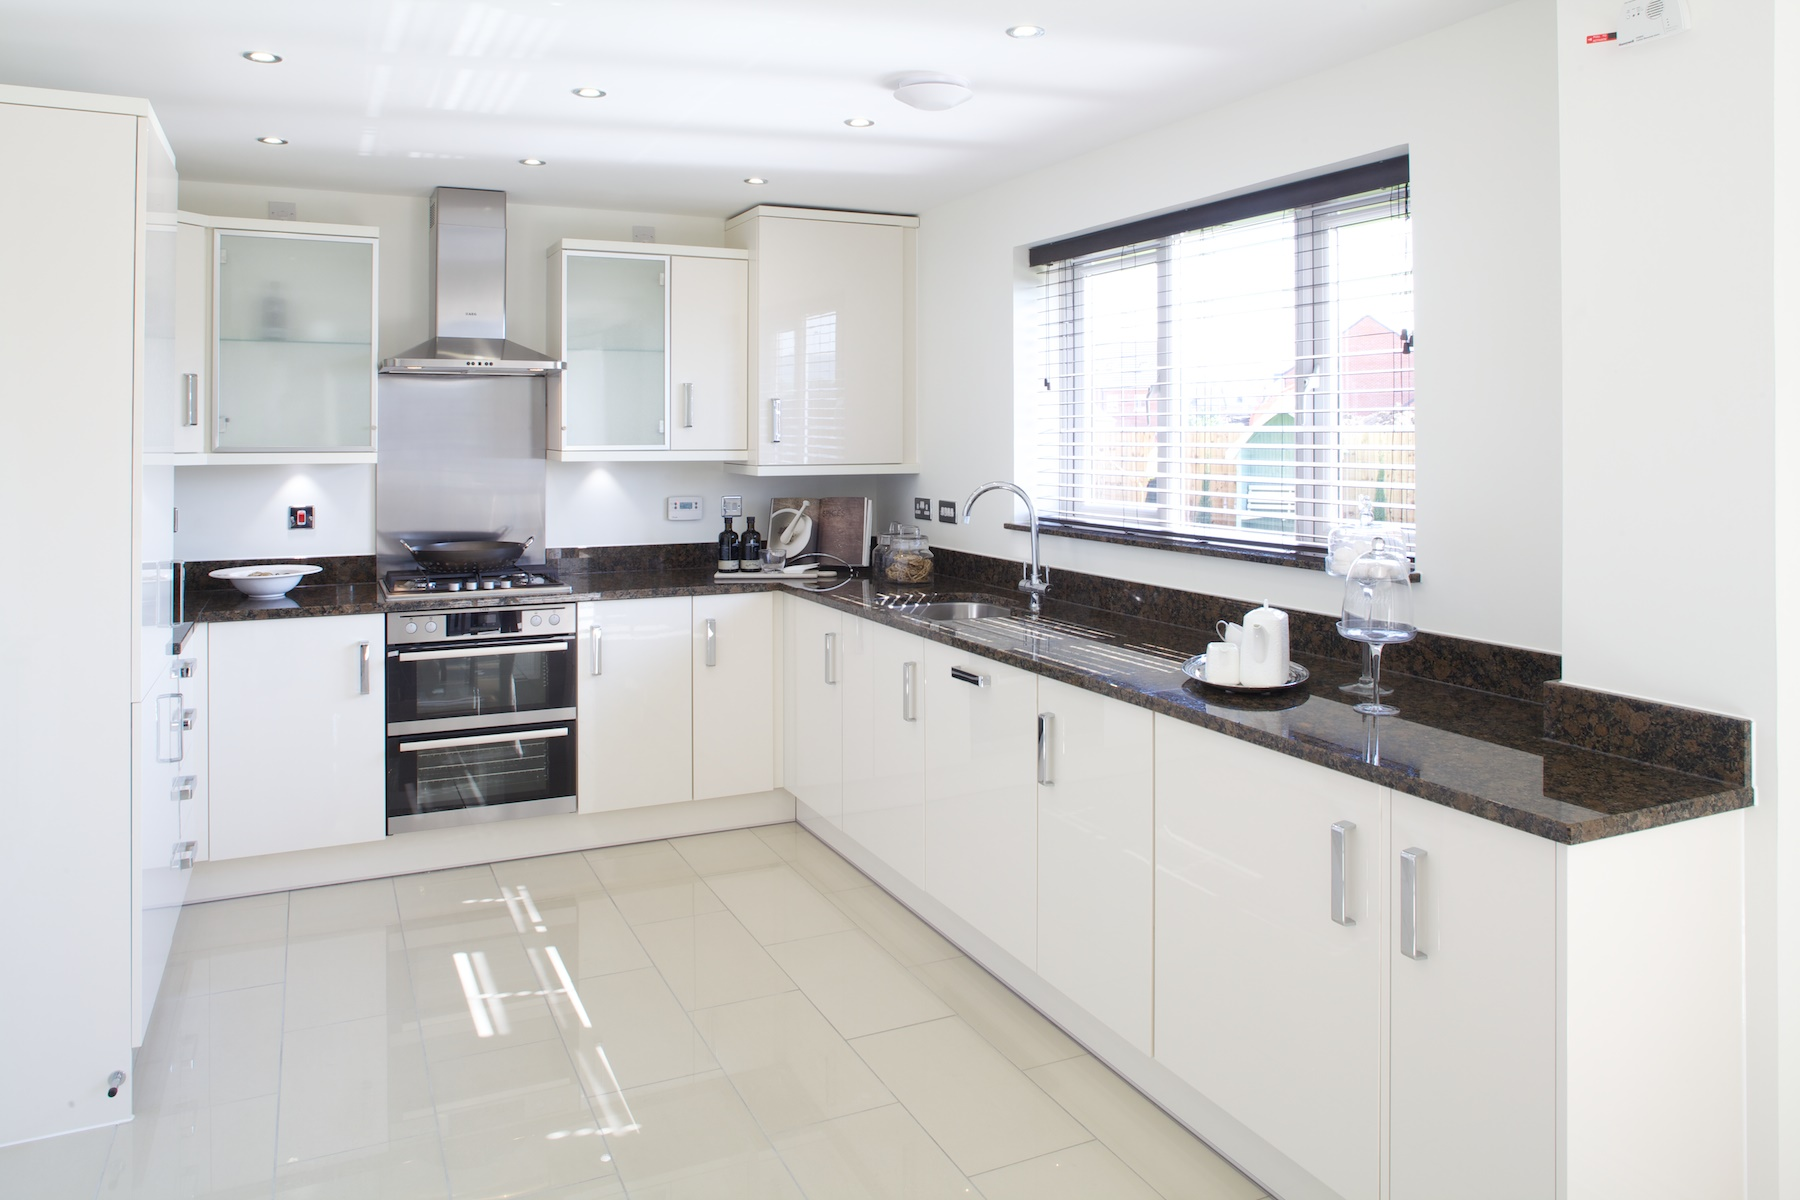 Kings Copse show home - Kitchen